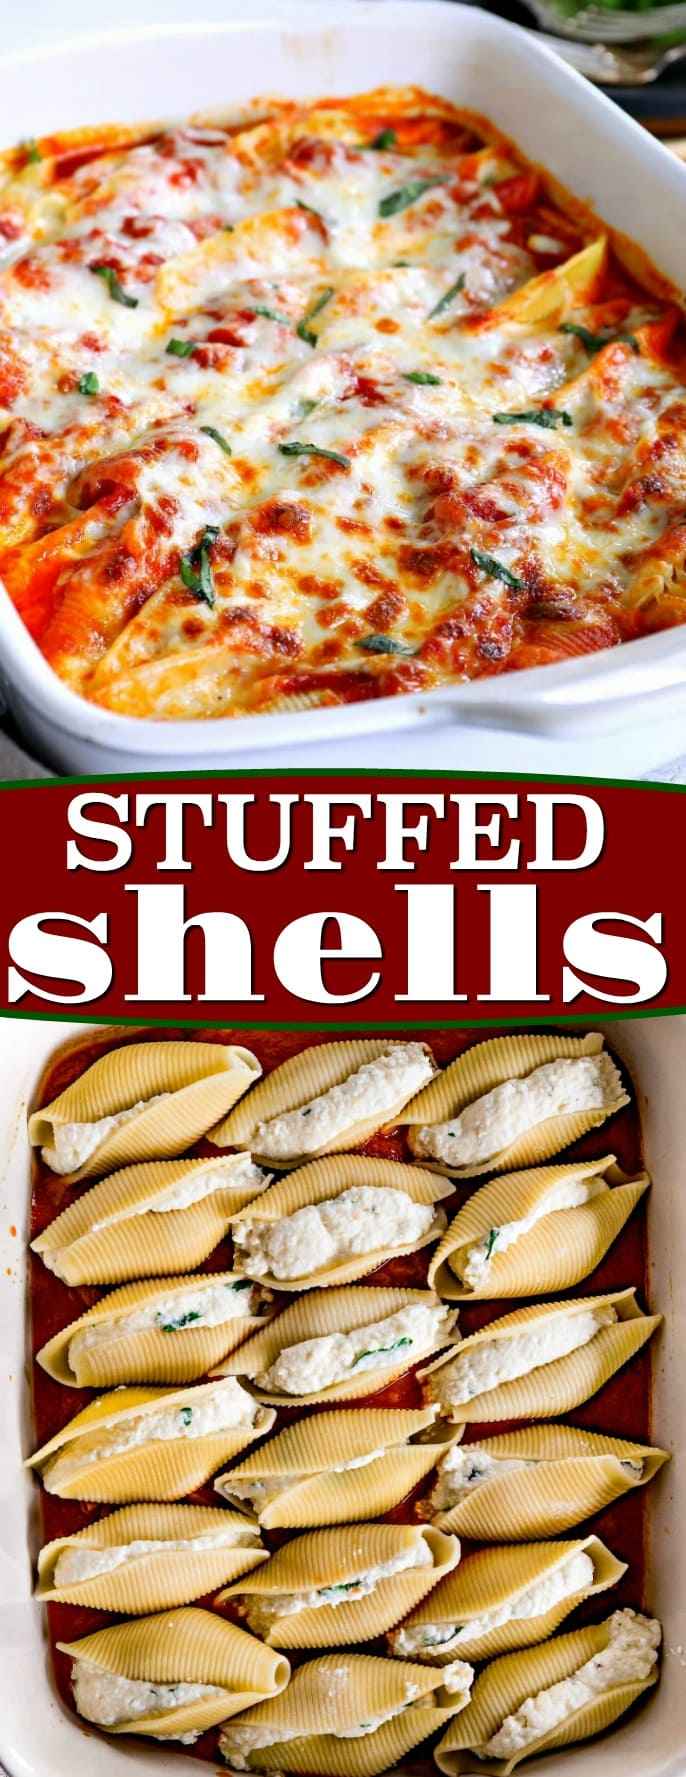 stuffed-shells-collage